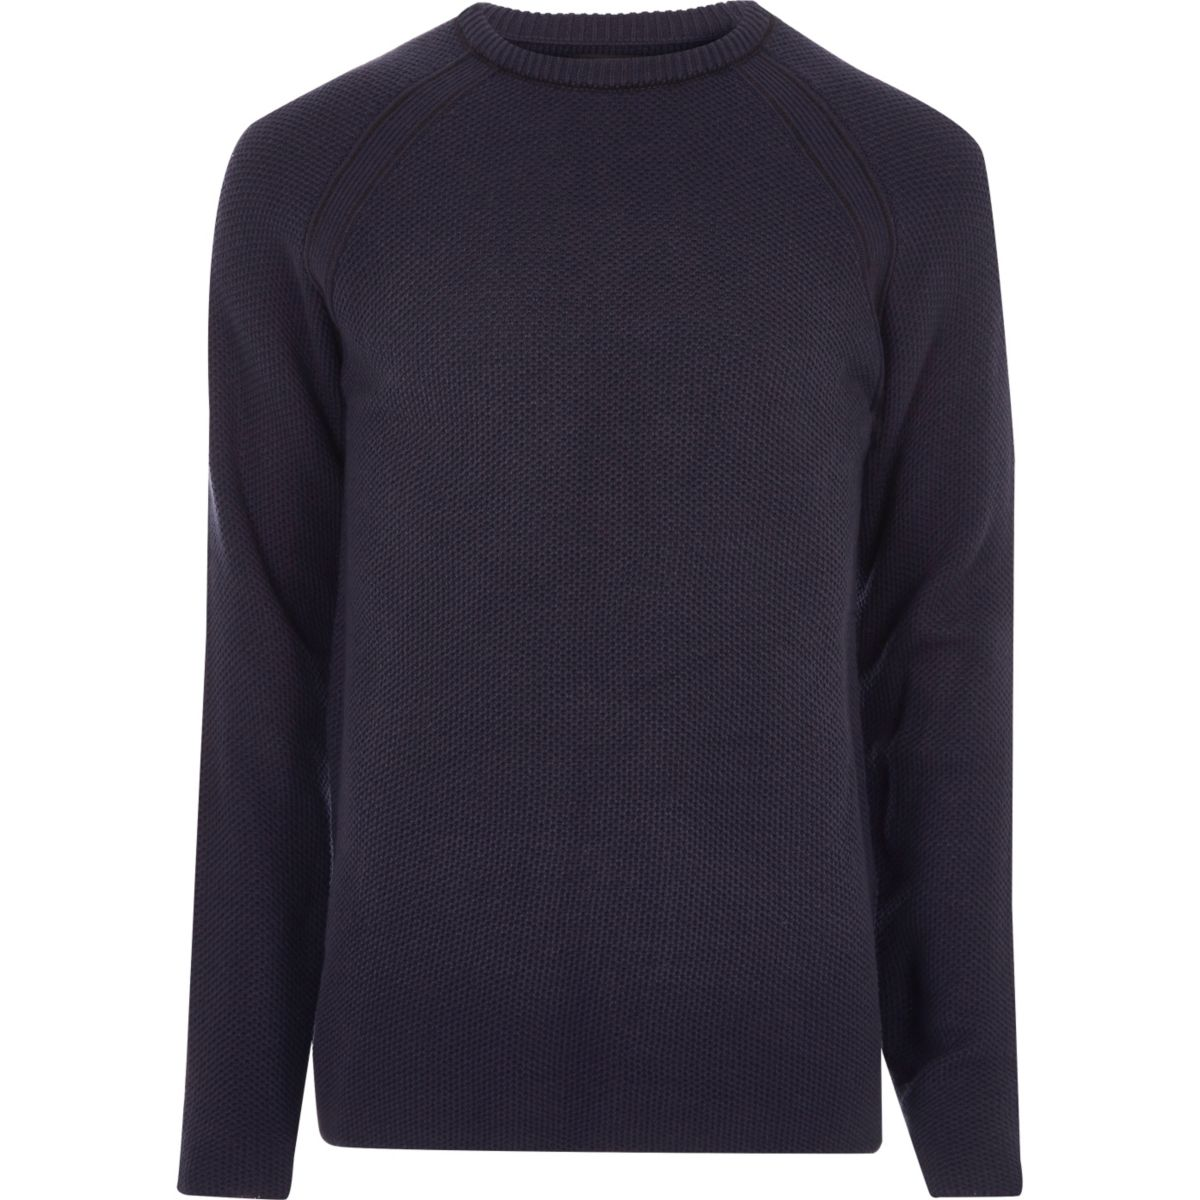 Navy blue textured crew neck jumper